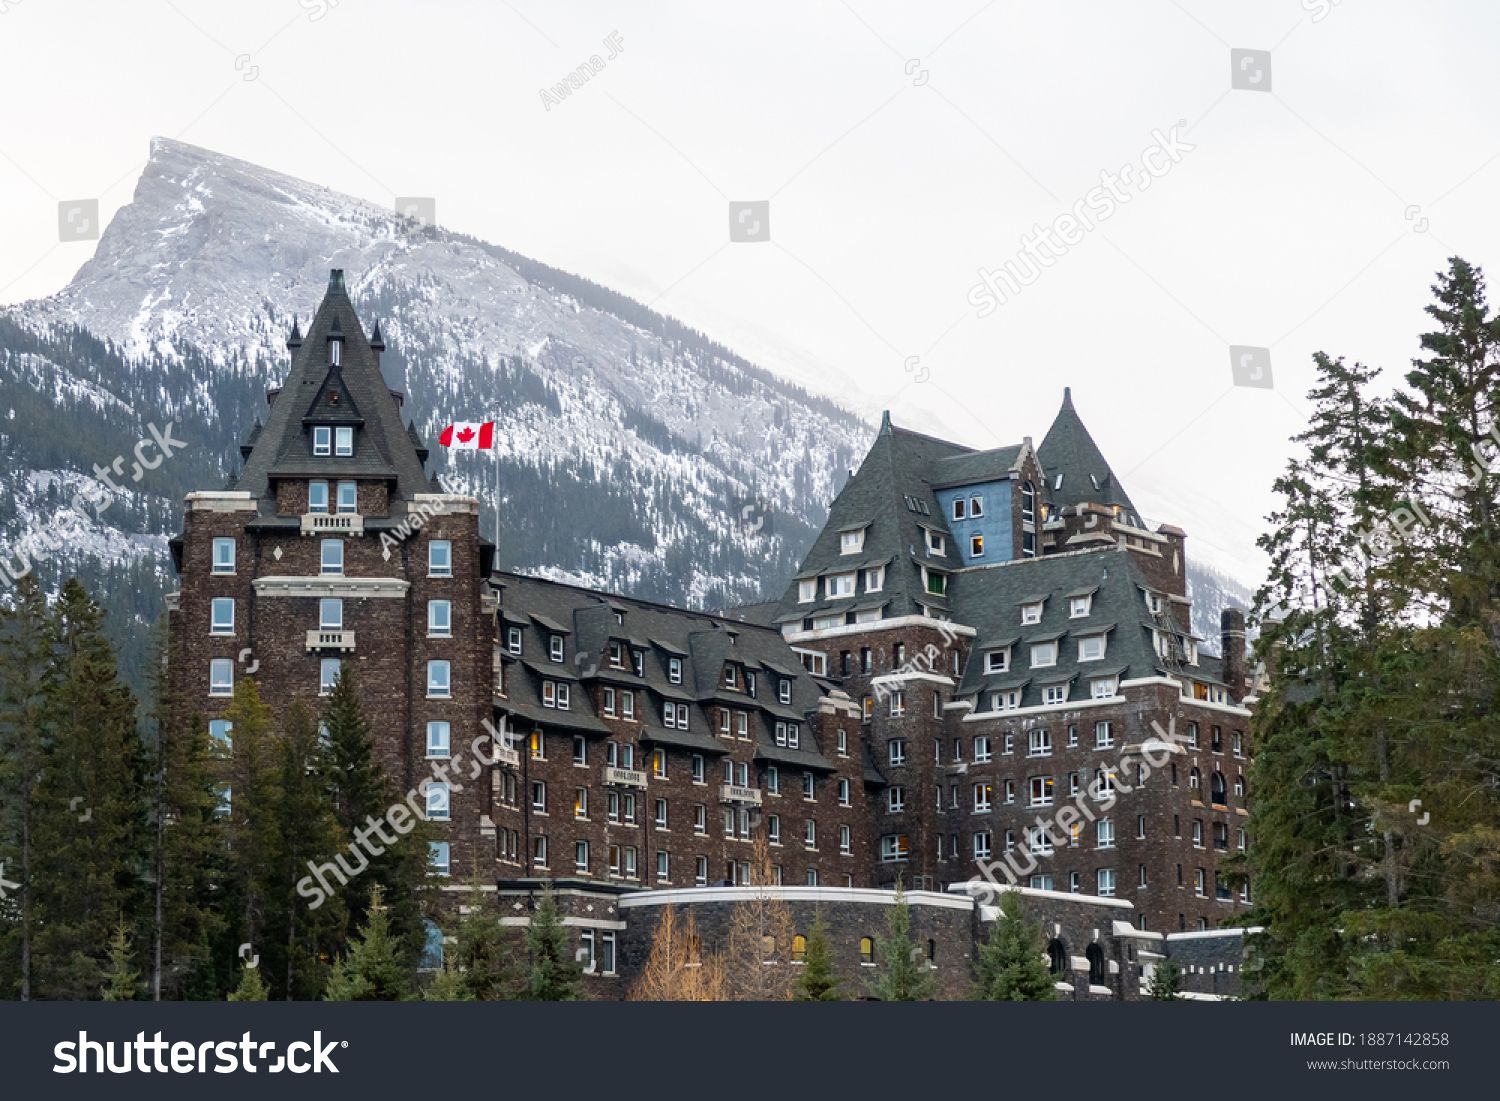 stock-photo-banff-canada-december-view-o